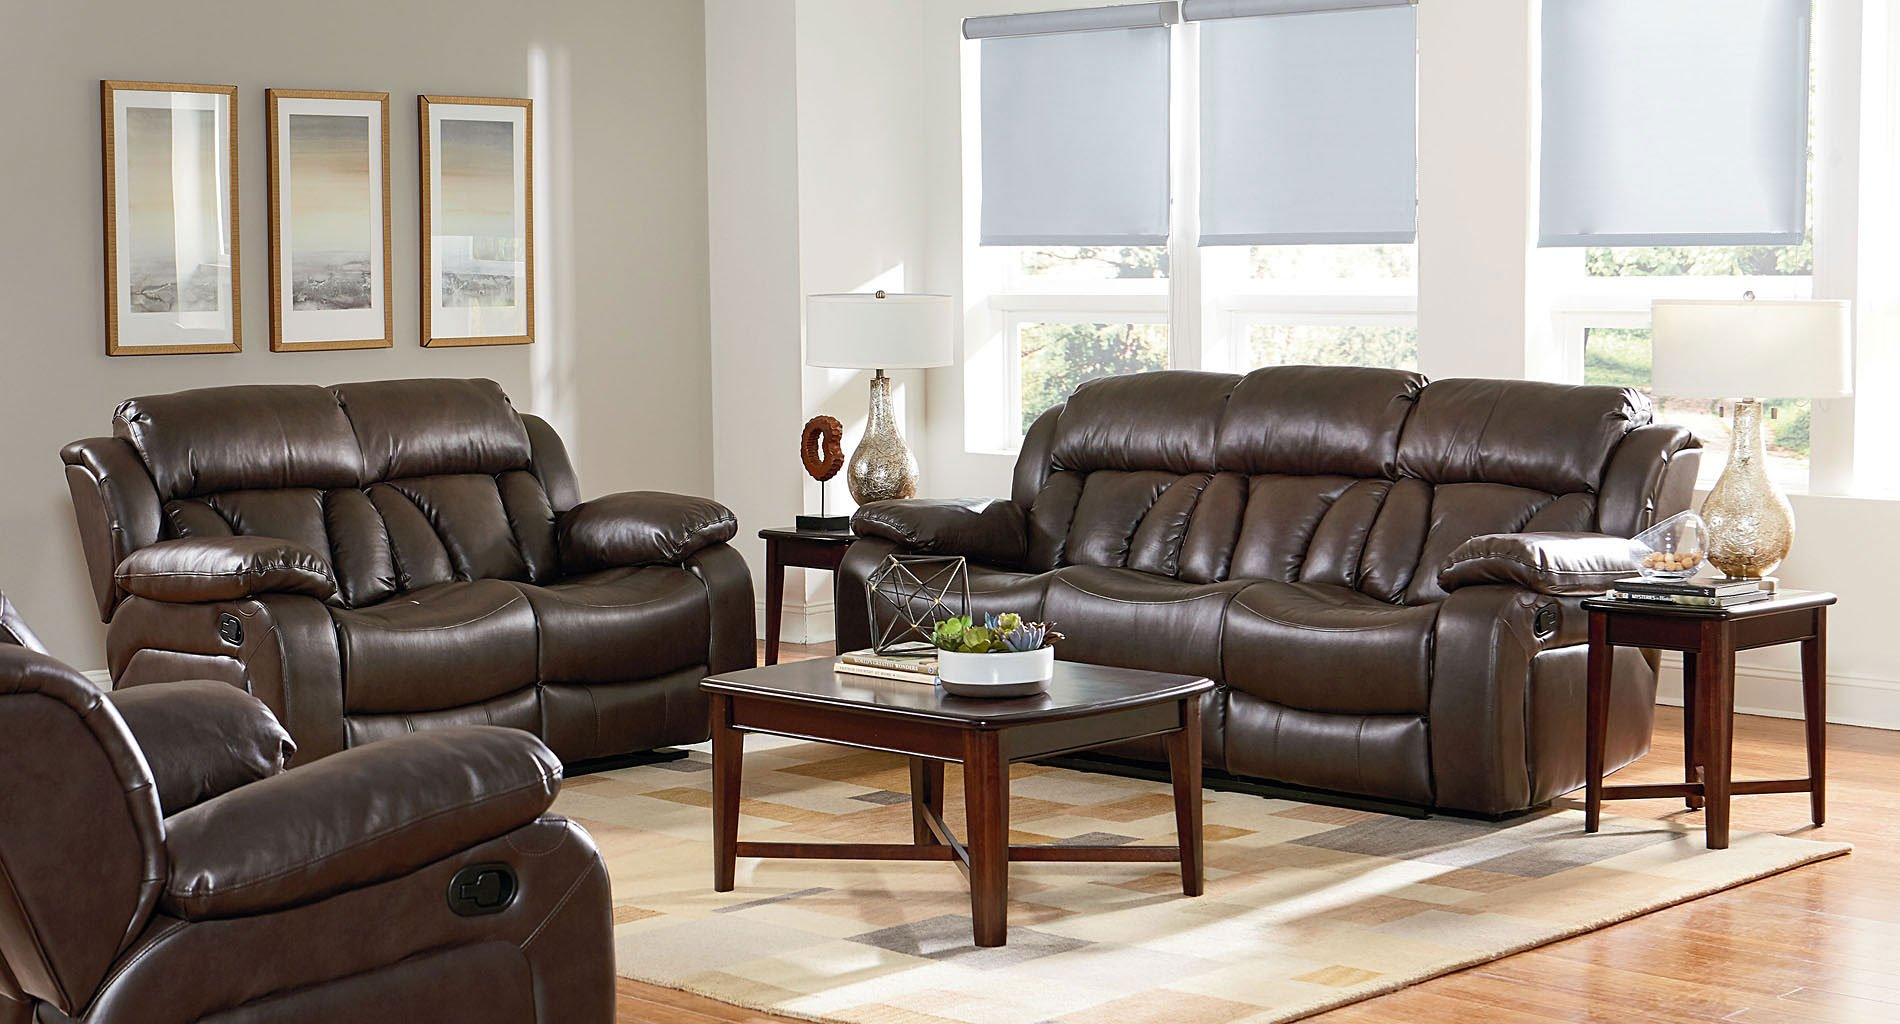 north shore living room shore reclining living room set living room sets 13454